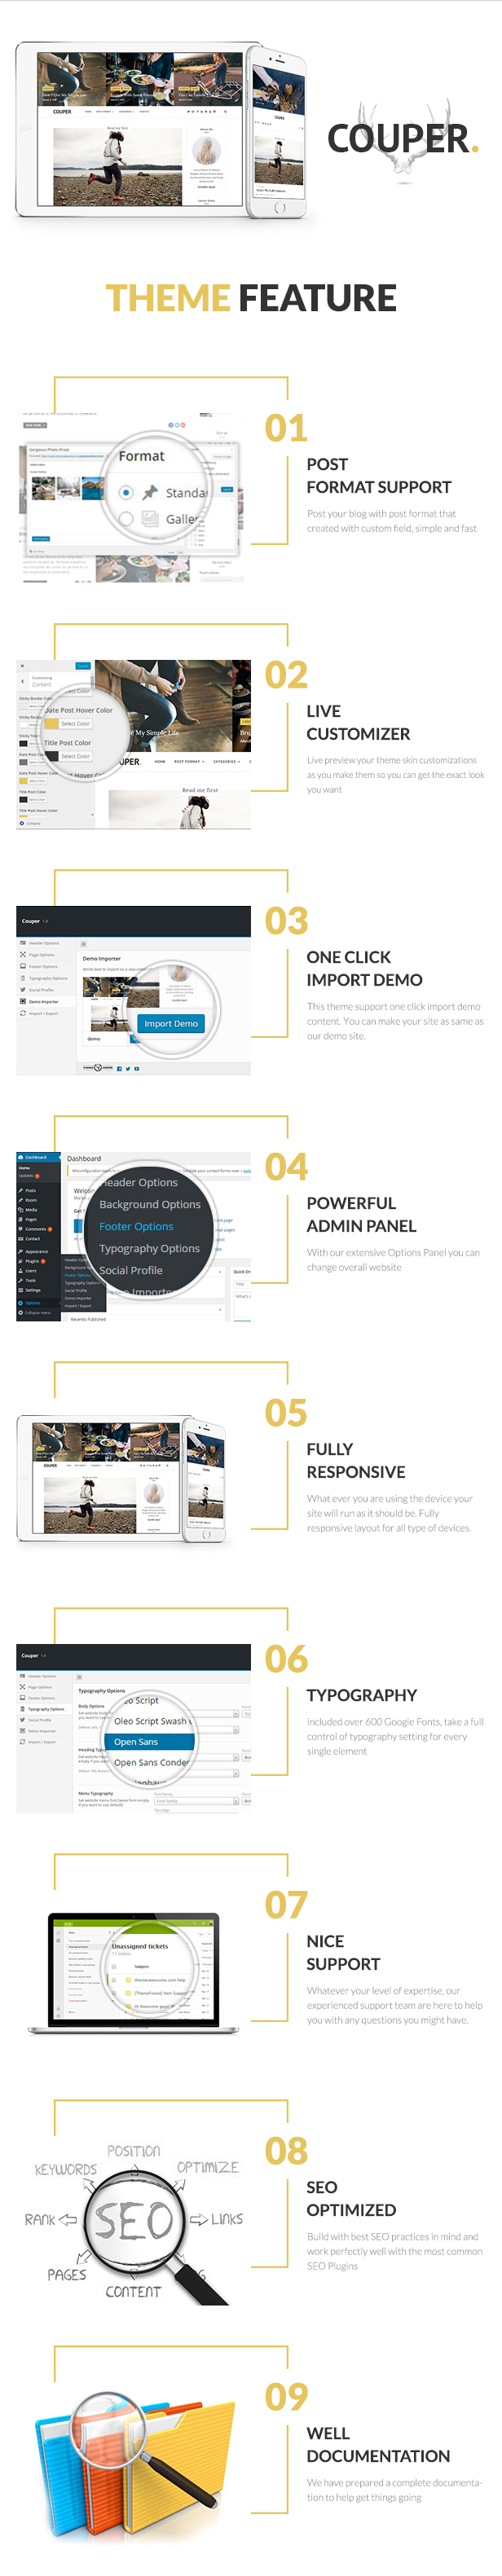 Responsive Personal Blog Theme - Couper